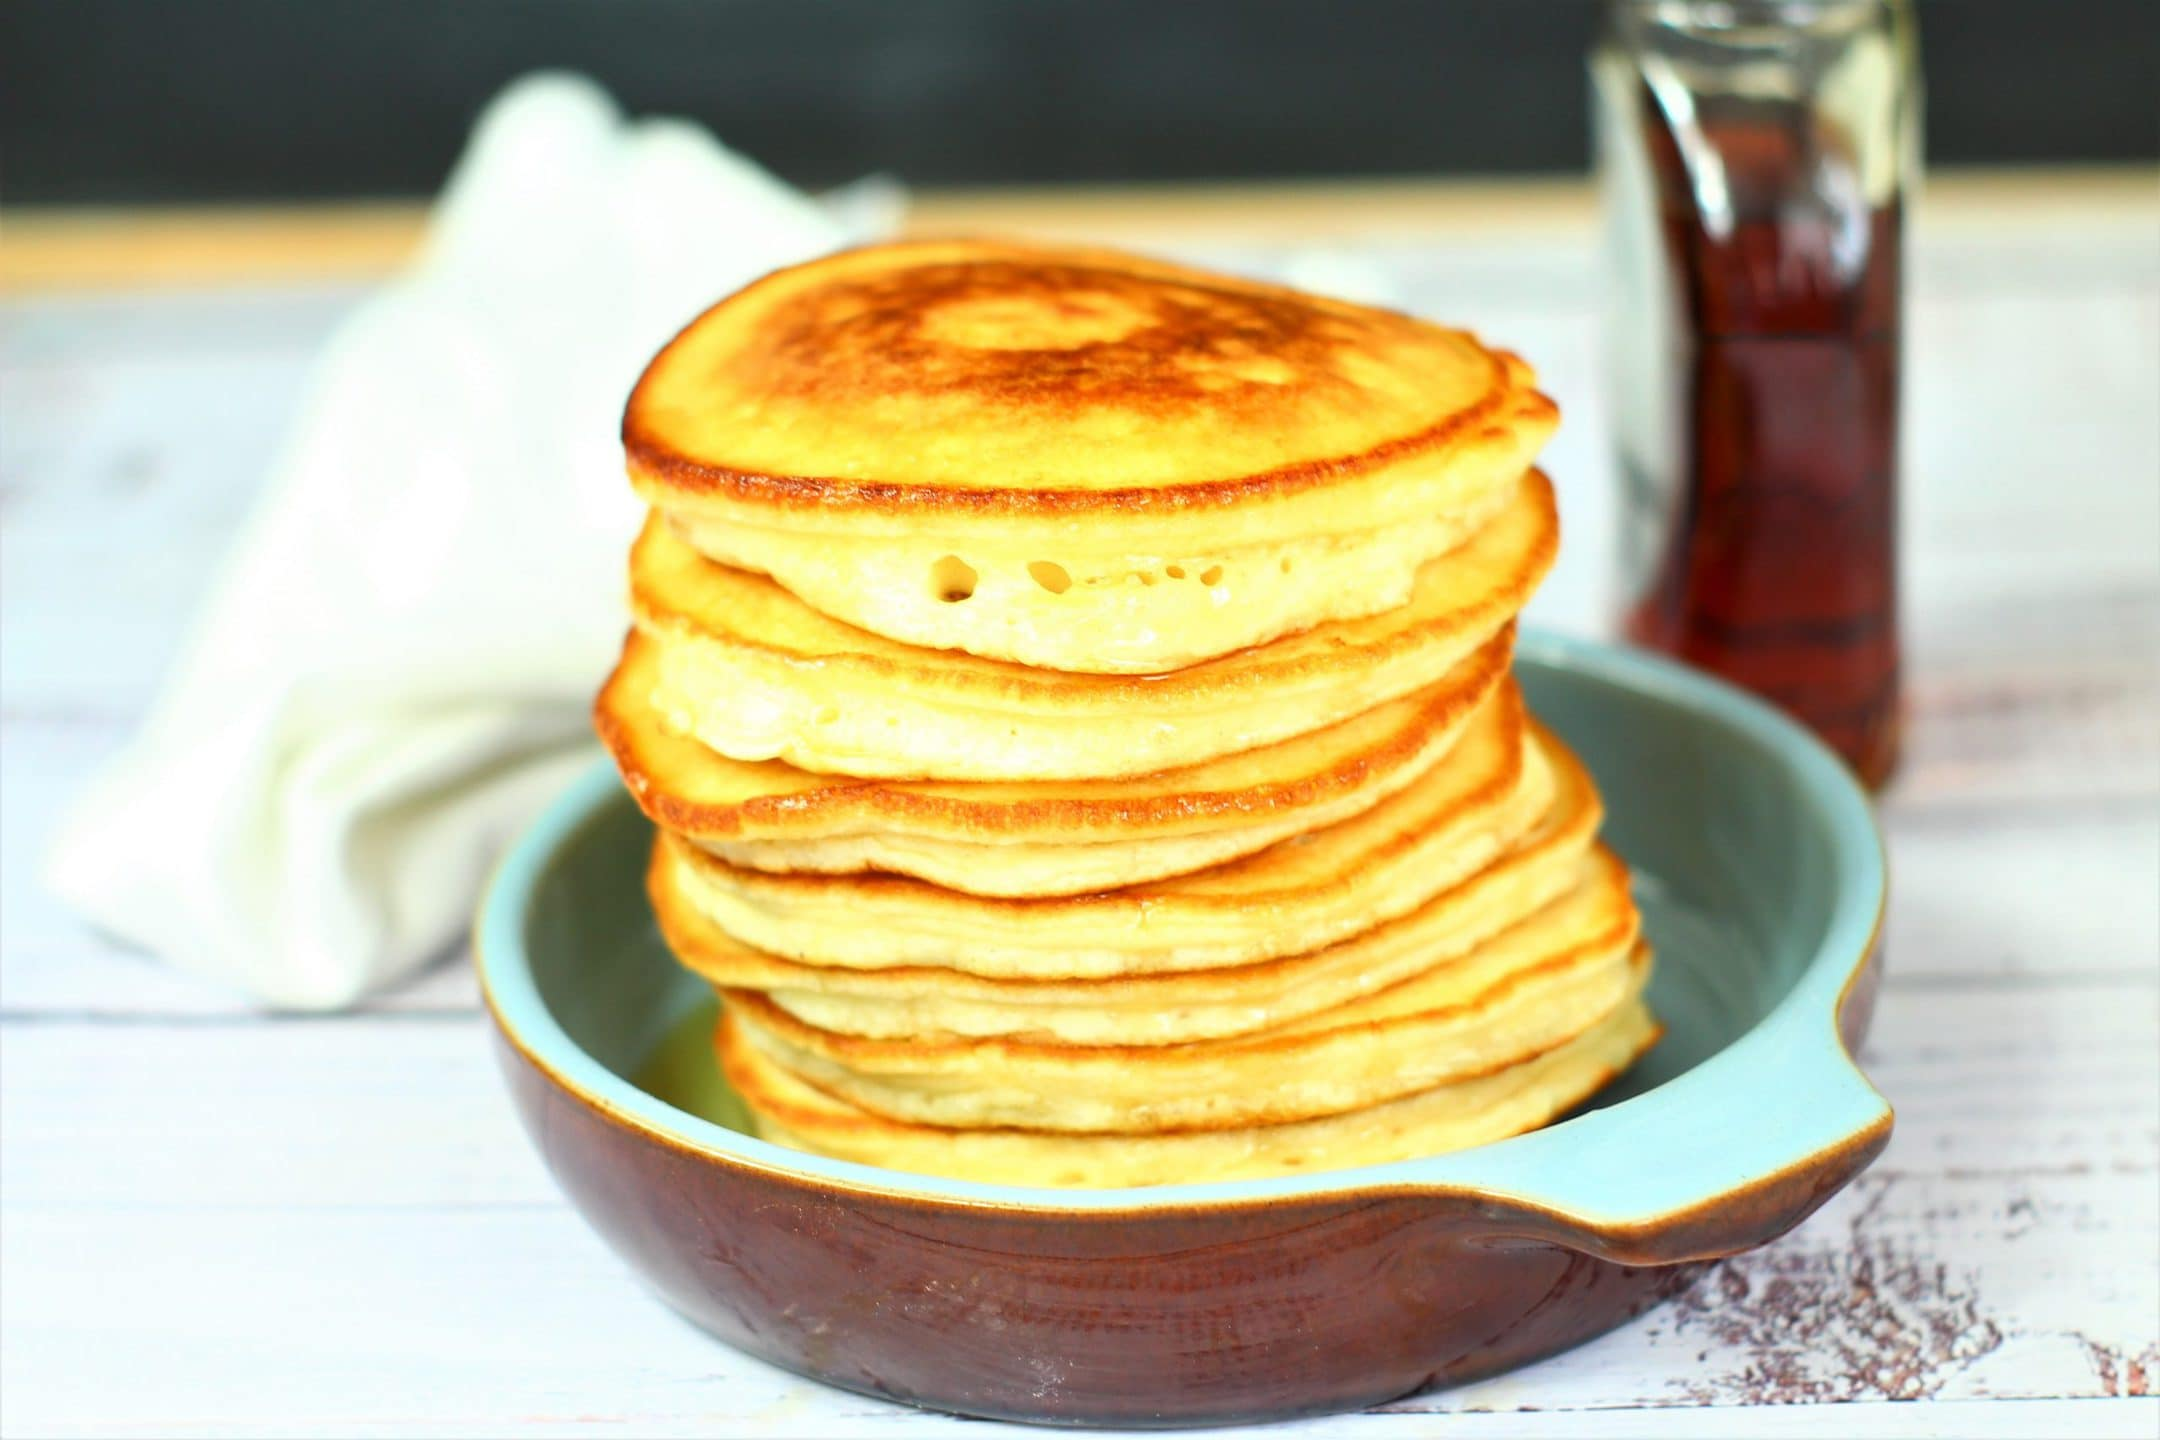 pancakes piled high in a dish with a jar of maple syrup in the background.